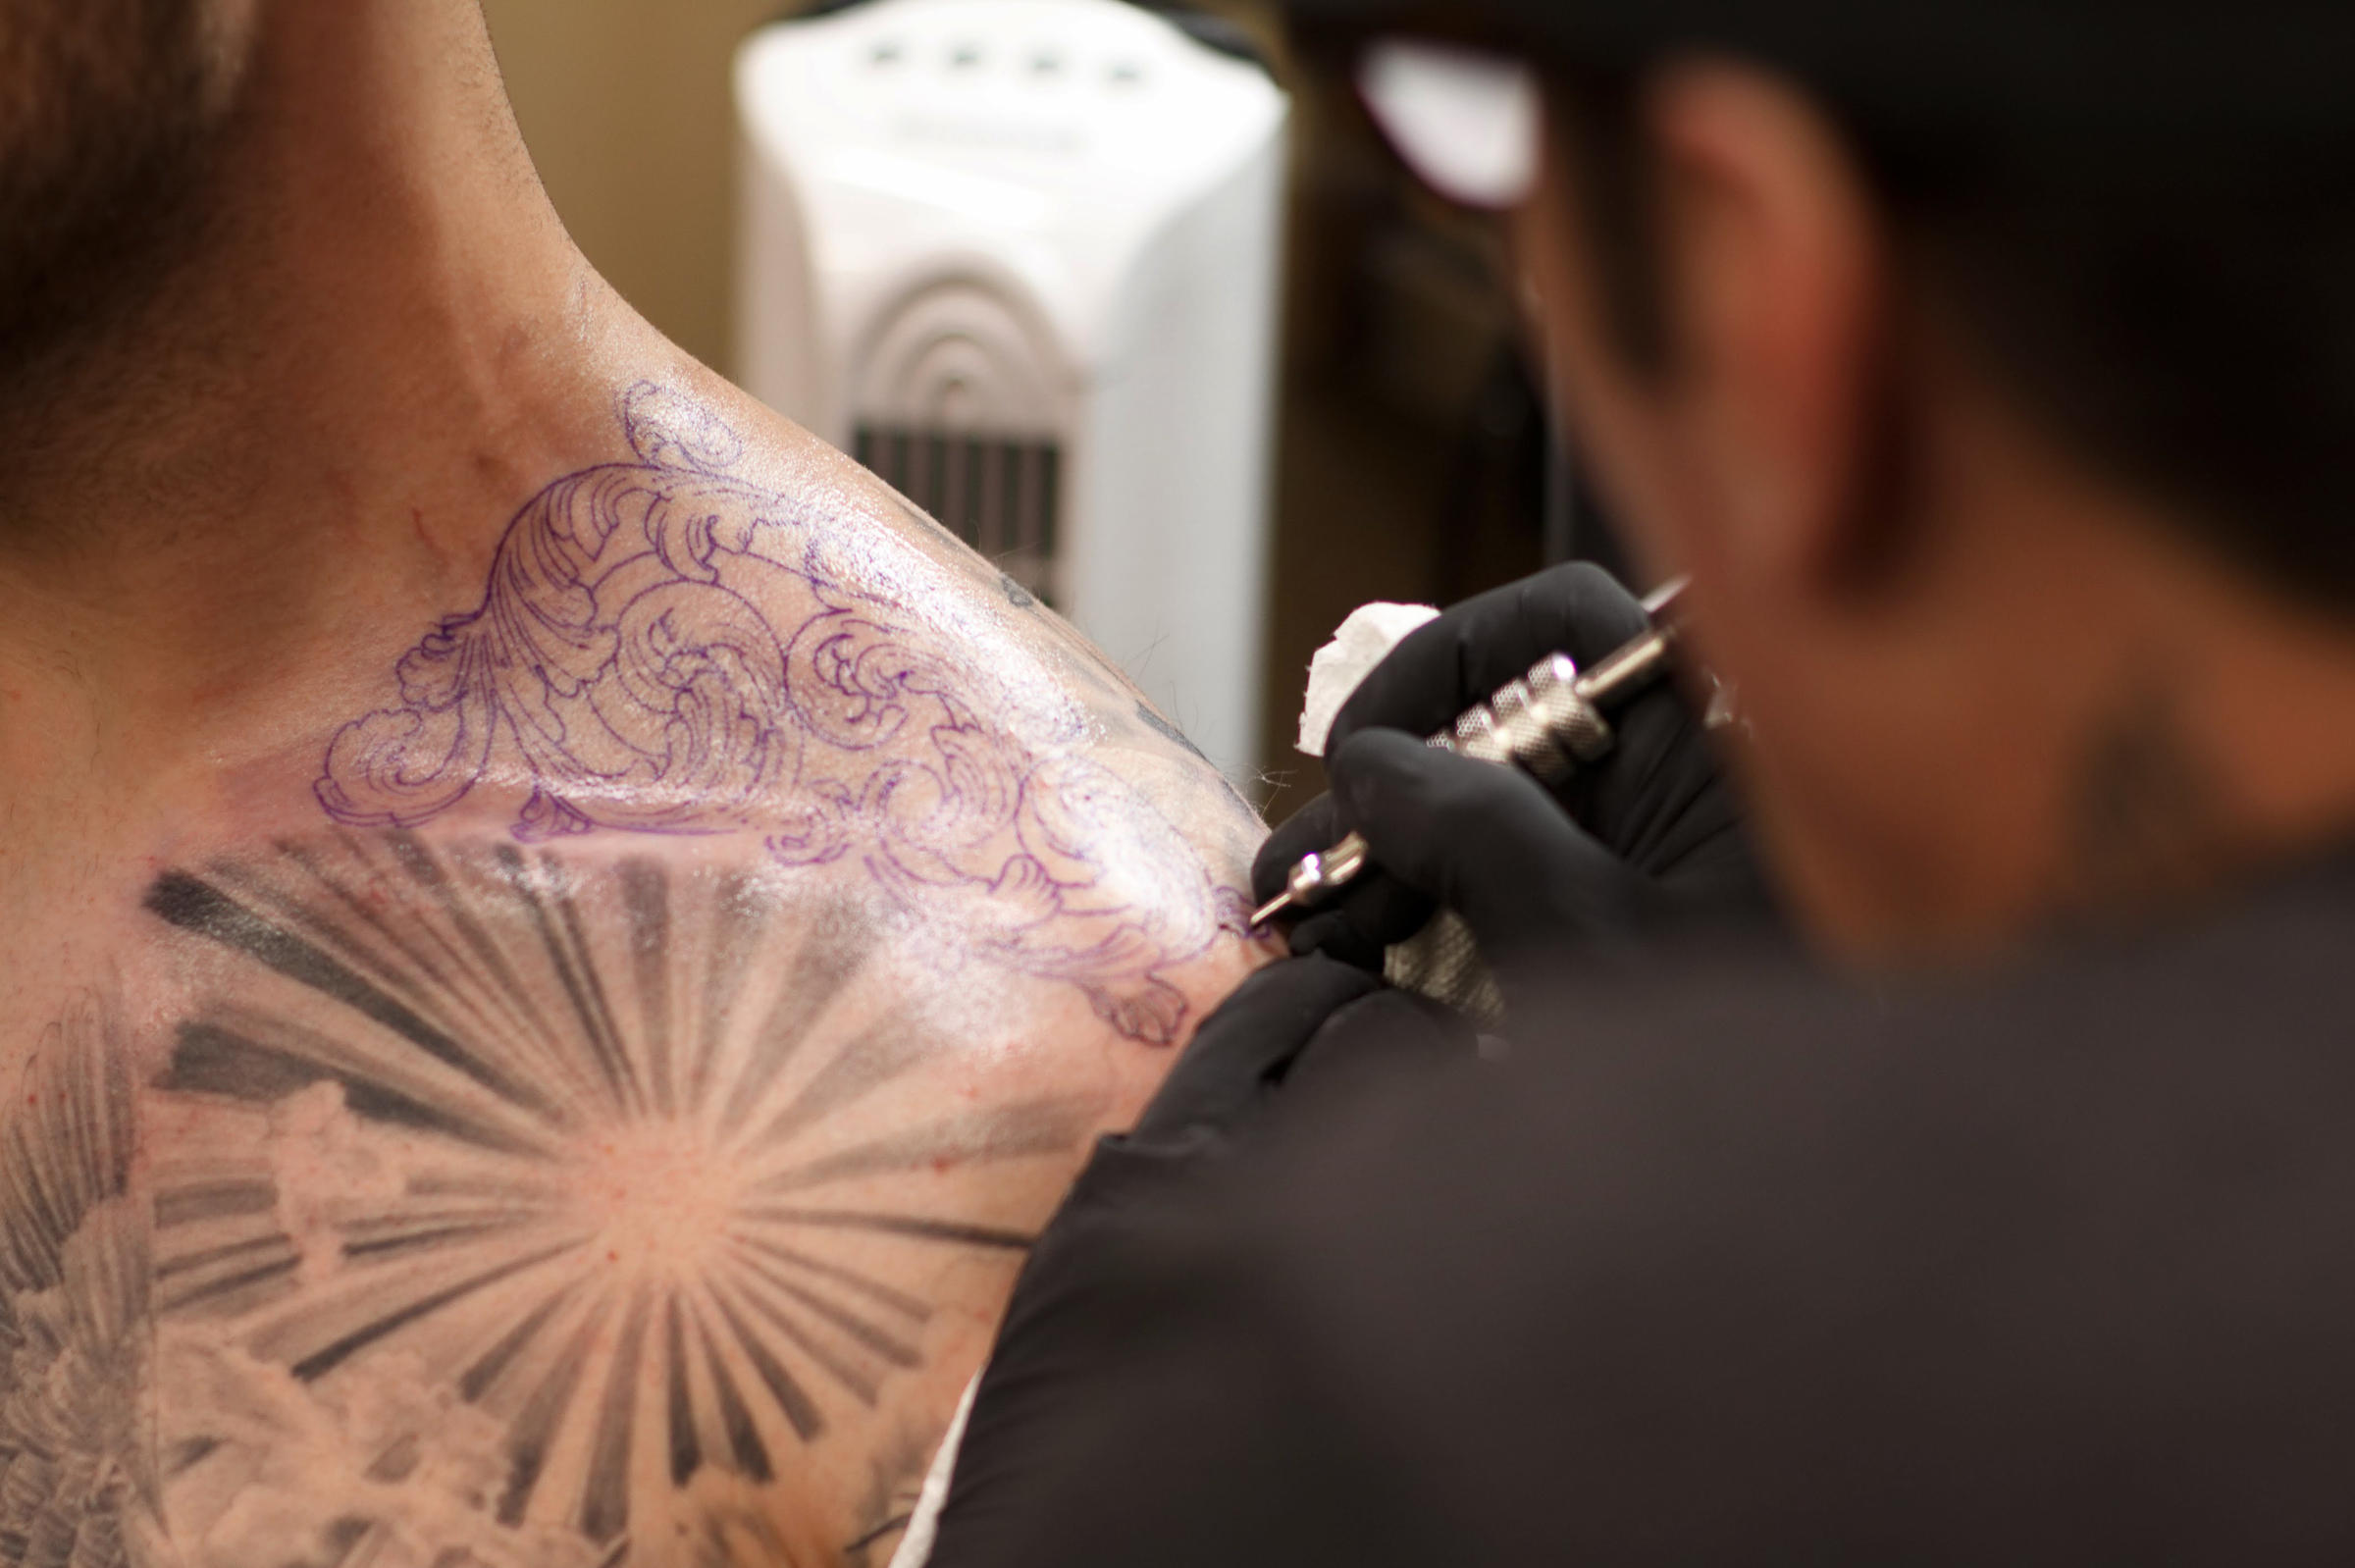 Black And Gray     And Brown: A Tattoo Style's Chicano Roots